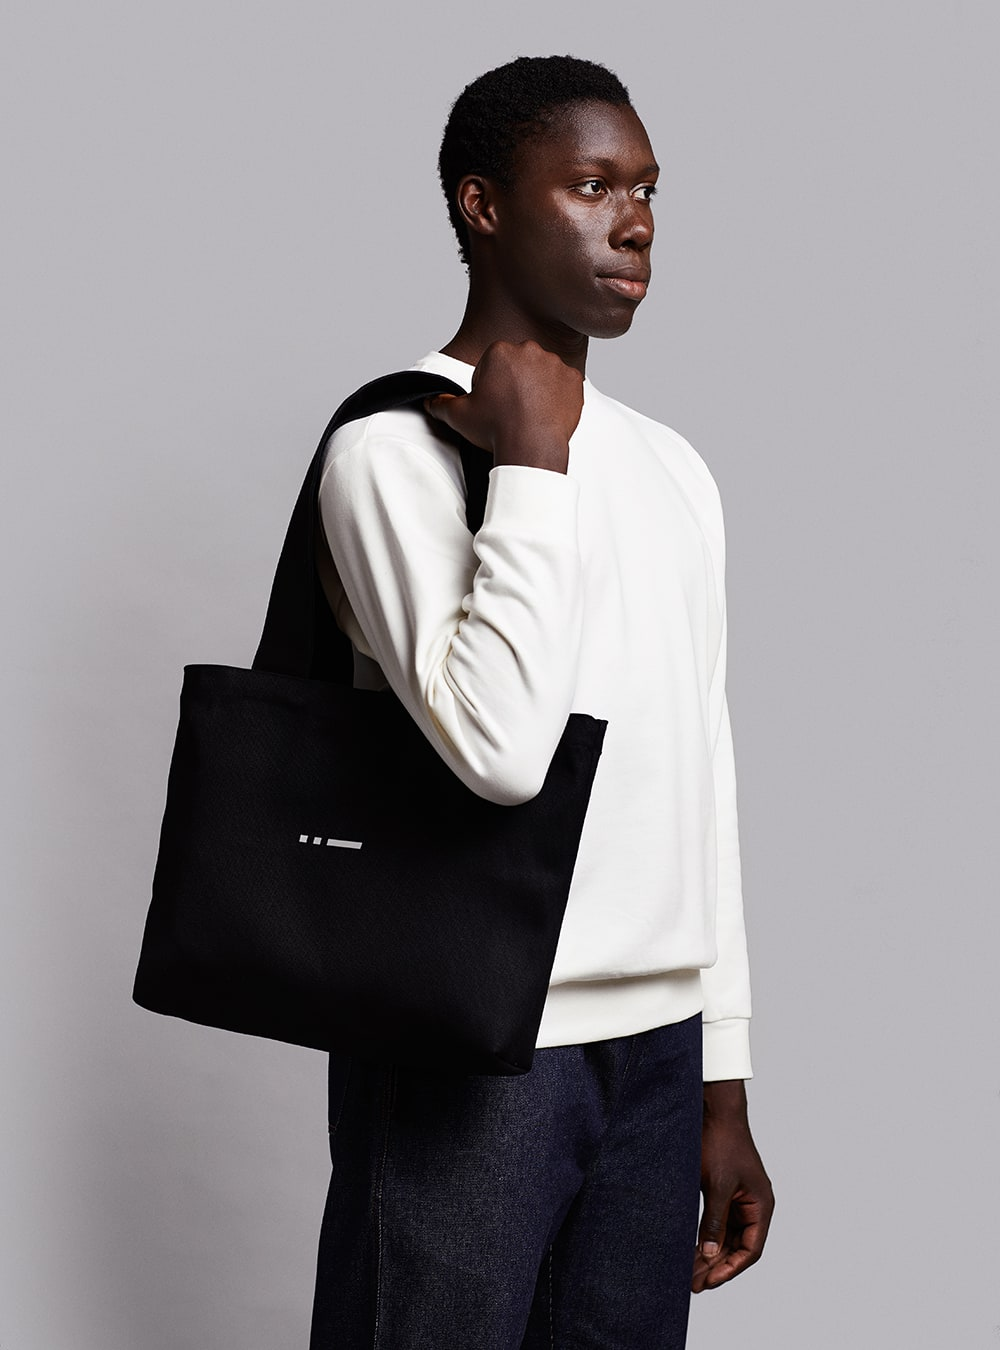 Tote bag (black) in cotton, made in Portugal by wetheknot.